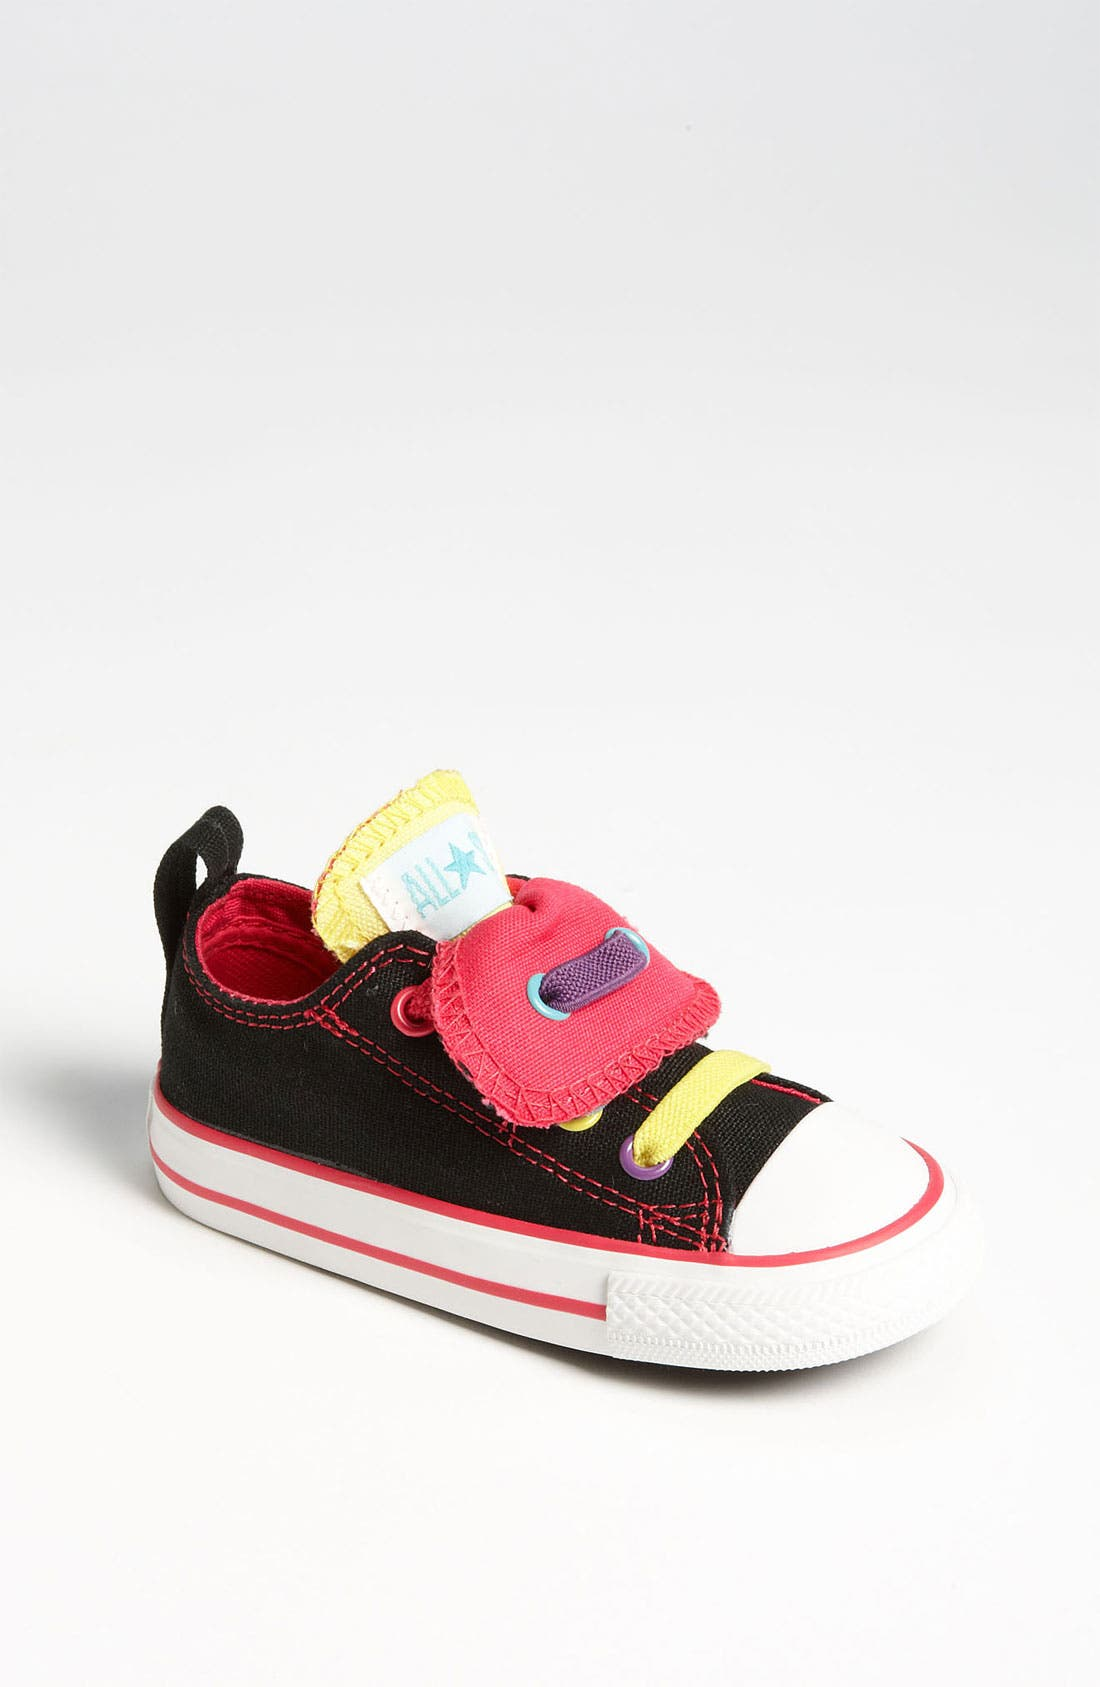 Alternate Image 1 Selected - Converse 'All Star®' Sneaker (Baby, Walker, Toddler, Little Kid & Big Kid)